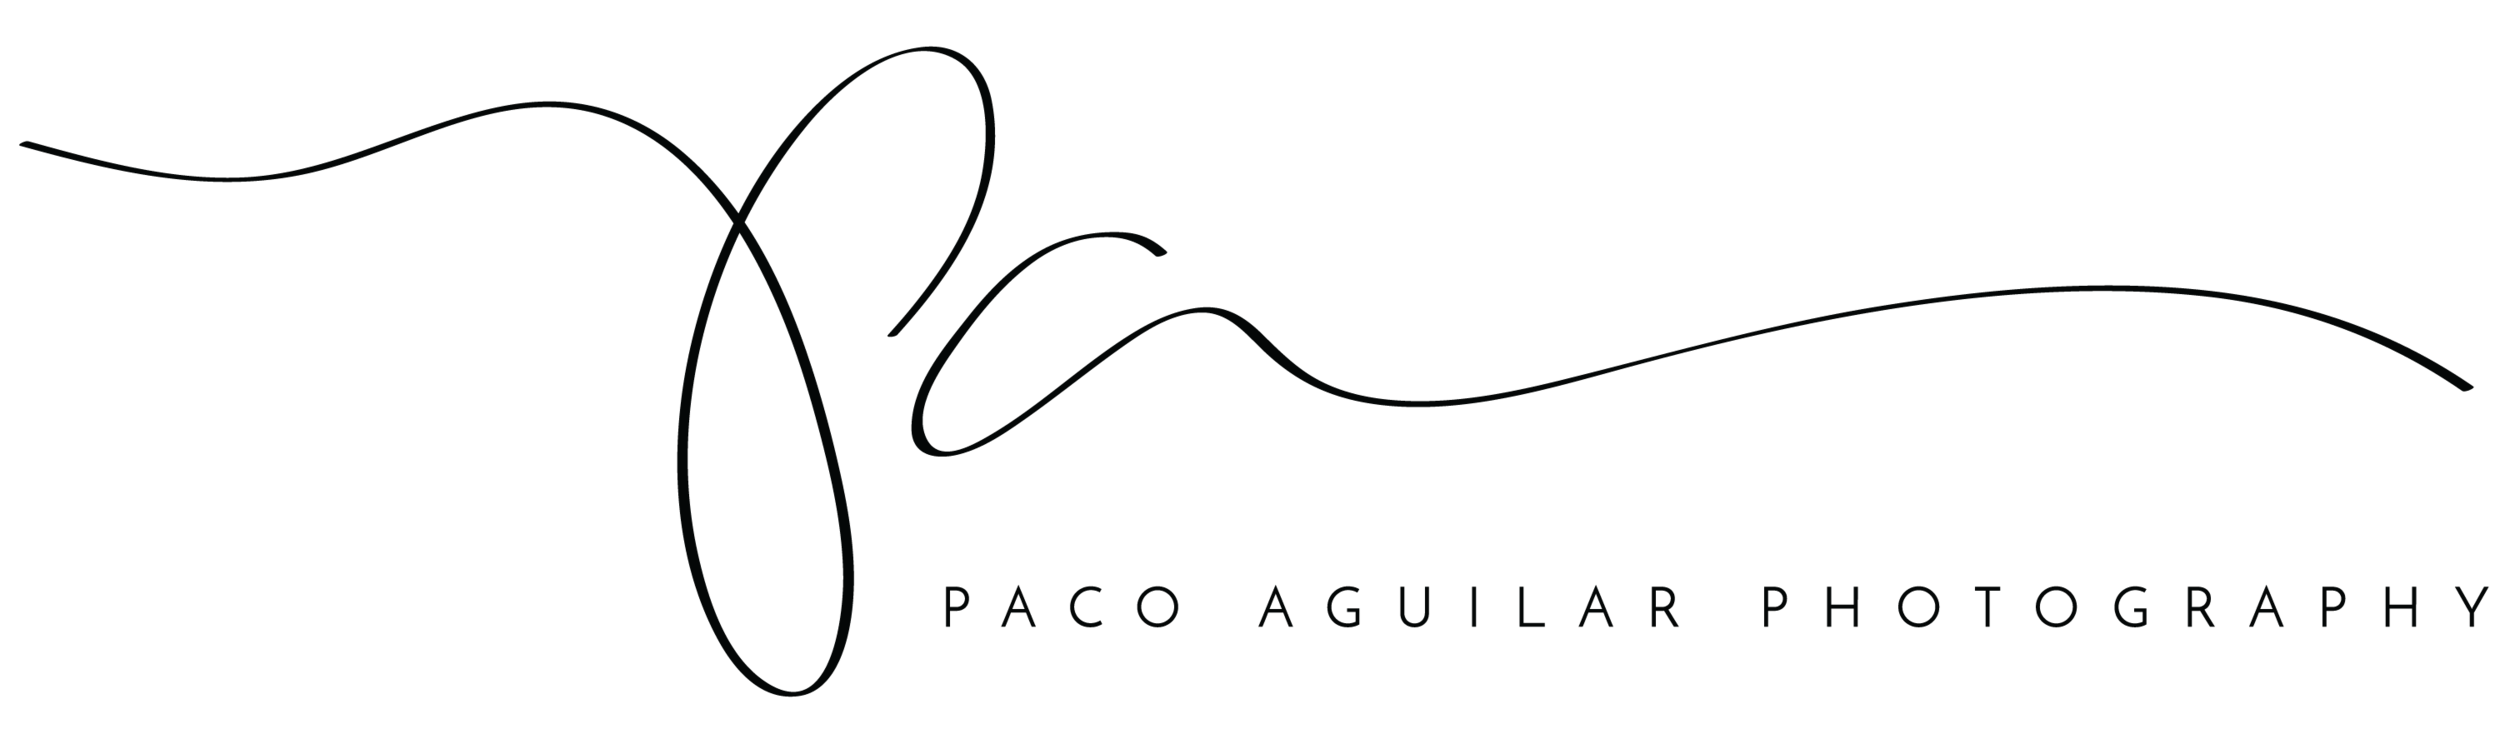 Paco Aguilar -01.png